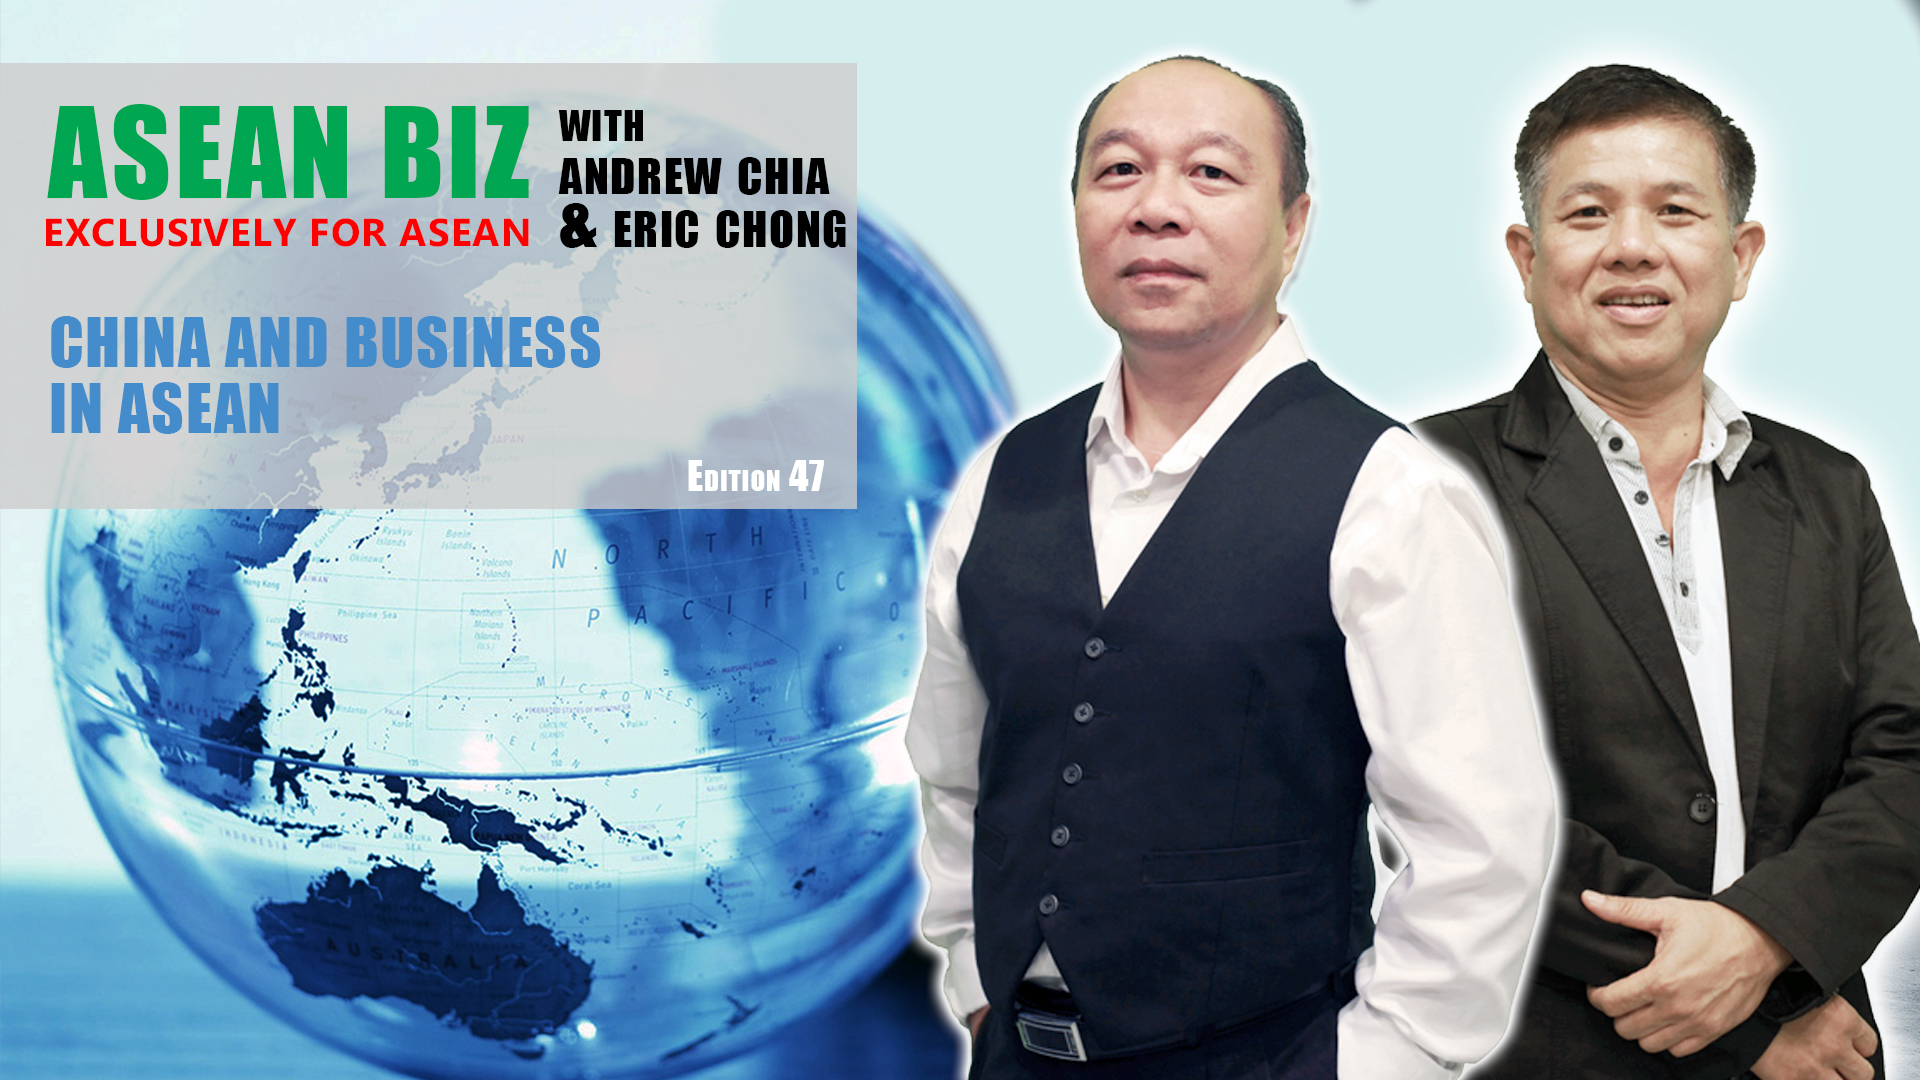 business in asean Family business in asia-pacific | facts and figures w o r l d ' s 2 5 0 l a r g e s t f a m i l y b u s i n e s s e s some of the oldest family businesses in asia.